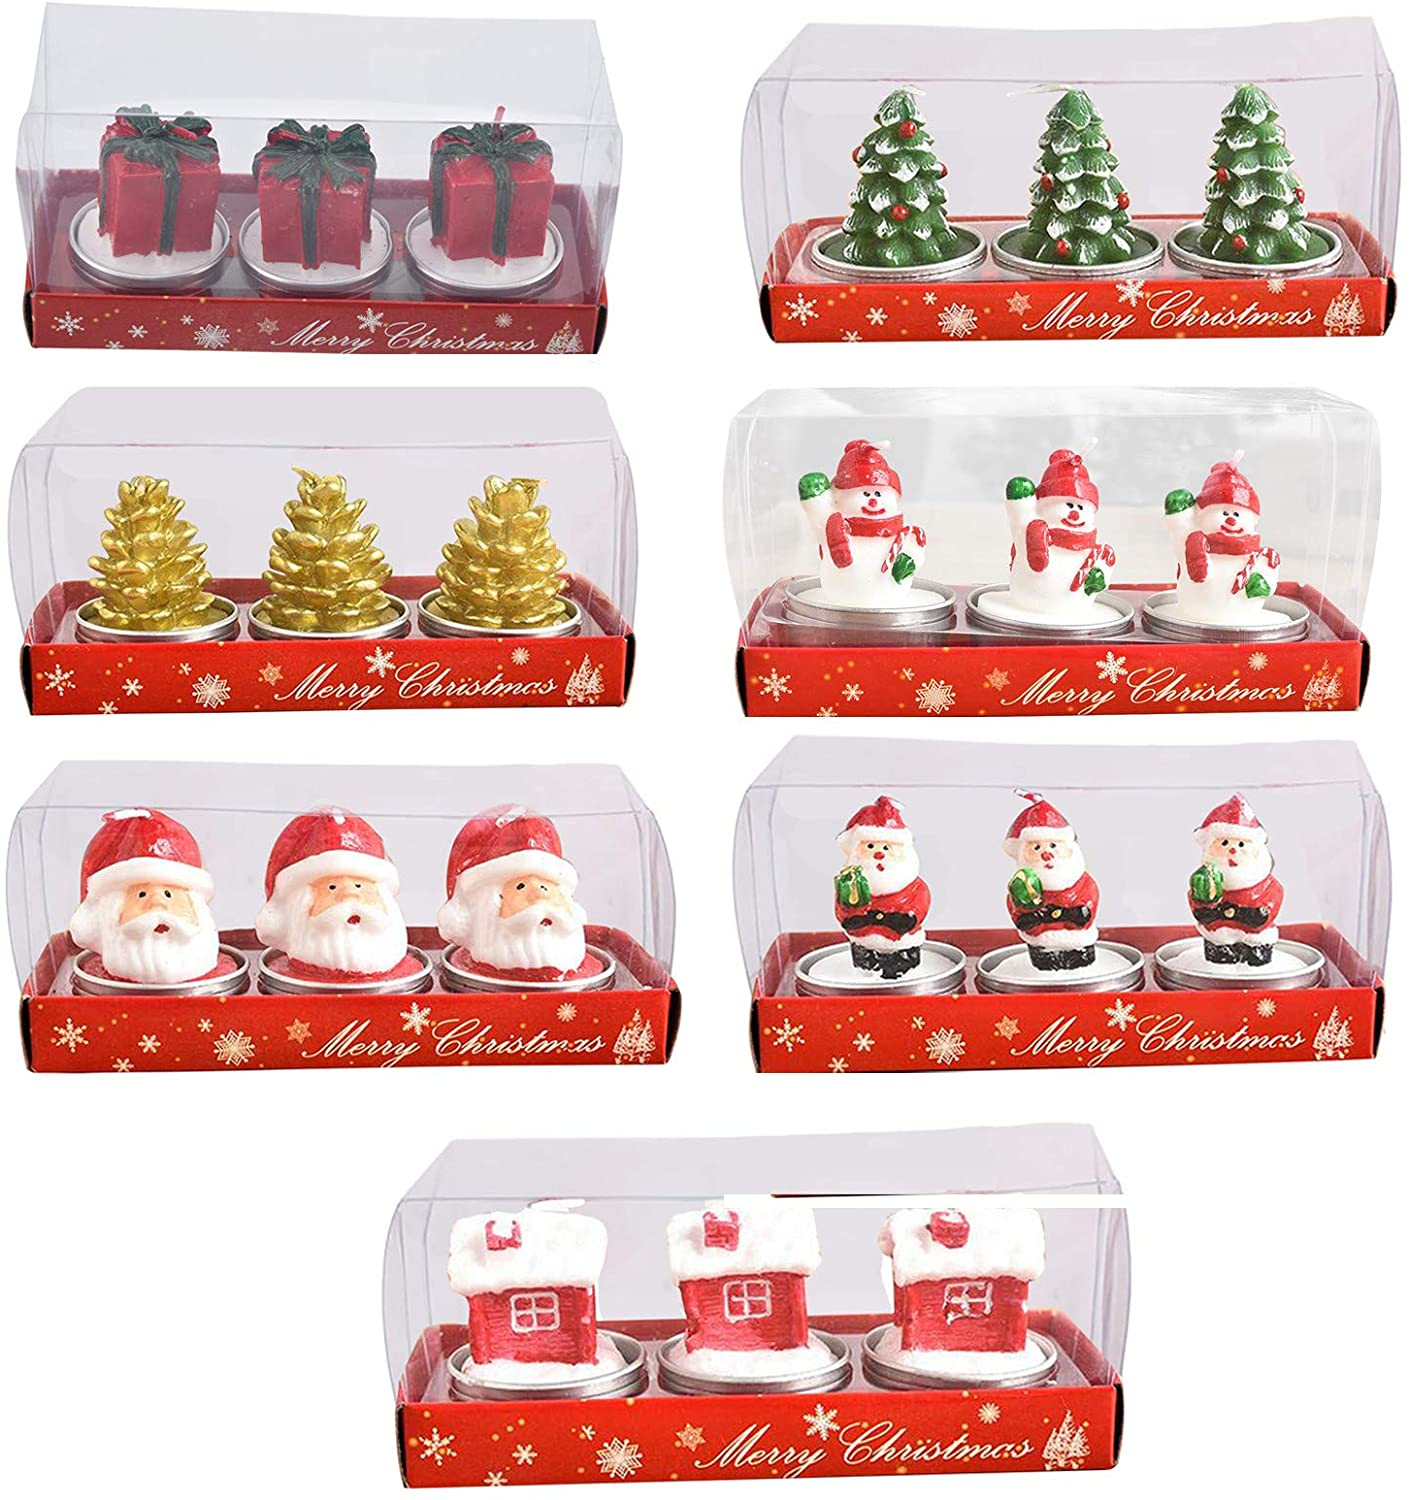 milkcha 7 Design Christmas Candle Painted Decoration Holiday Candle for Candles Festival Wedding Props and House-Warming Party Three in A Box 7PCS